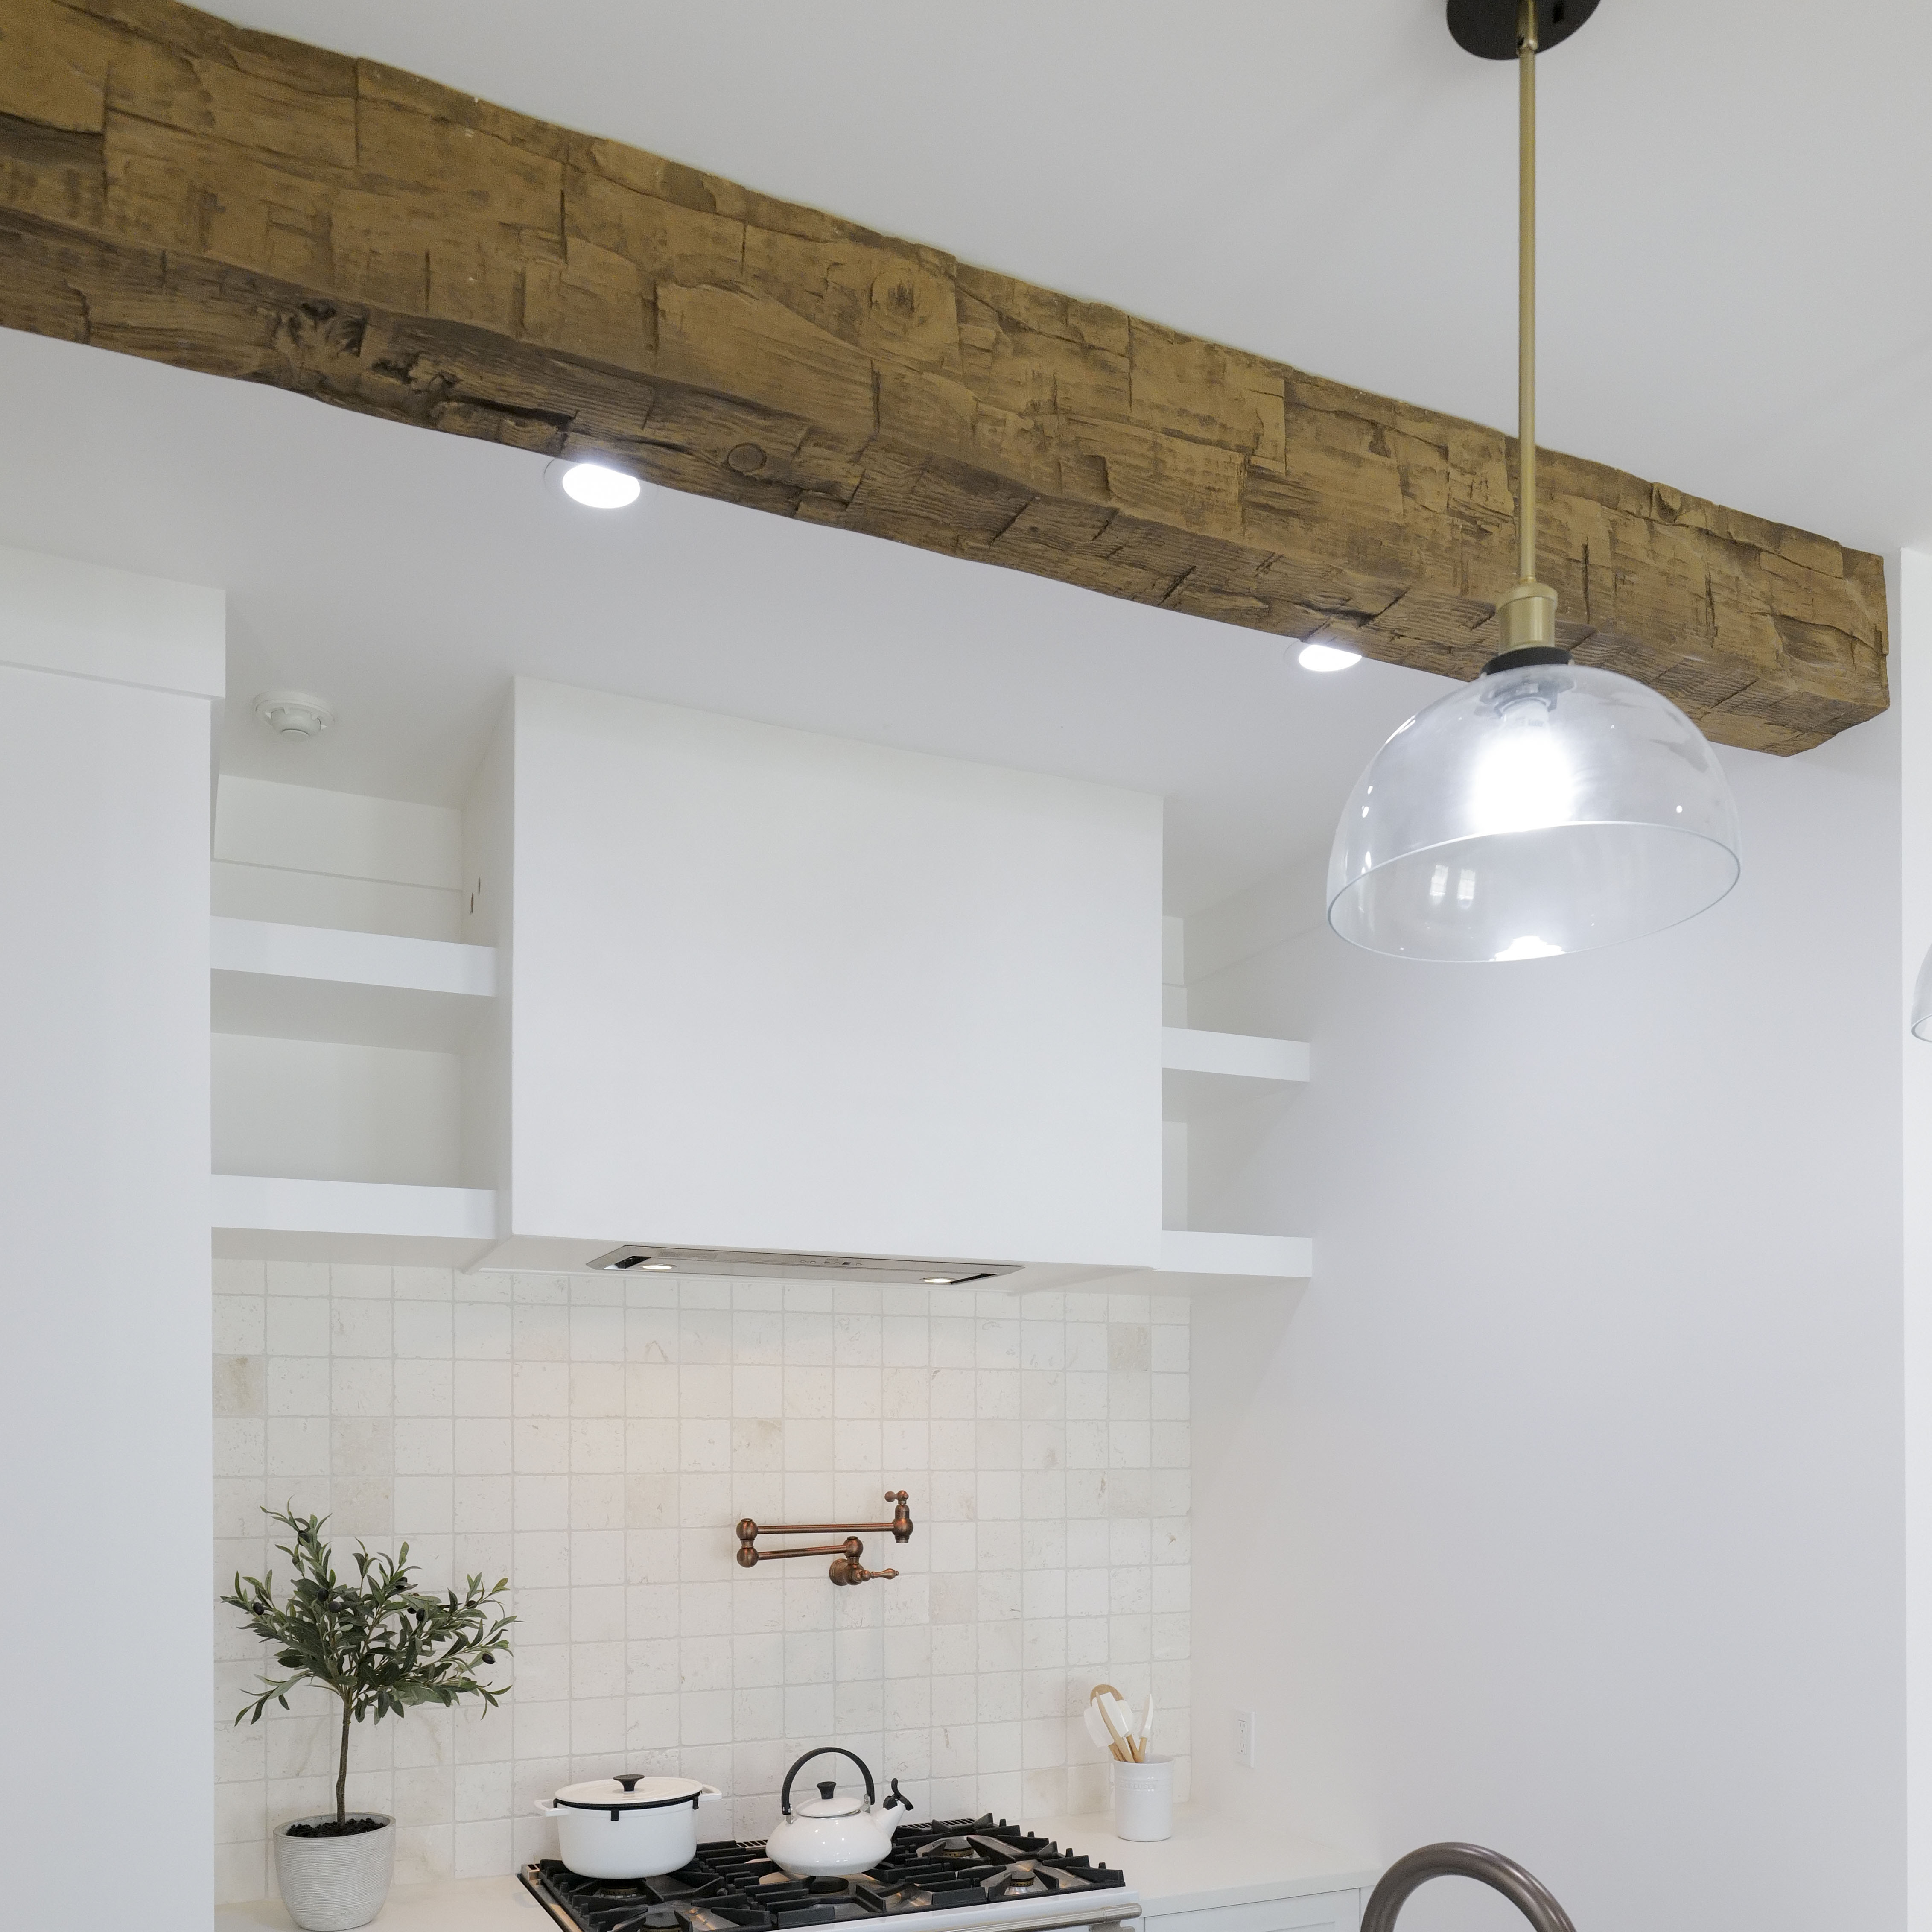 Suspended Beam Spanning Two Walls